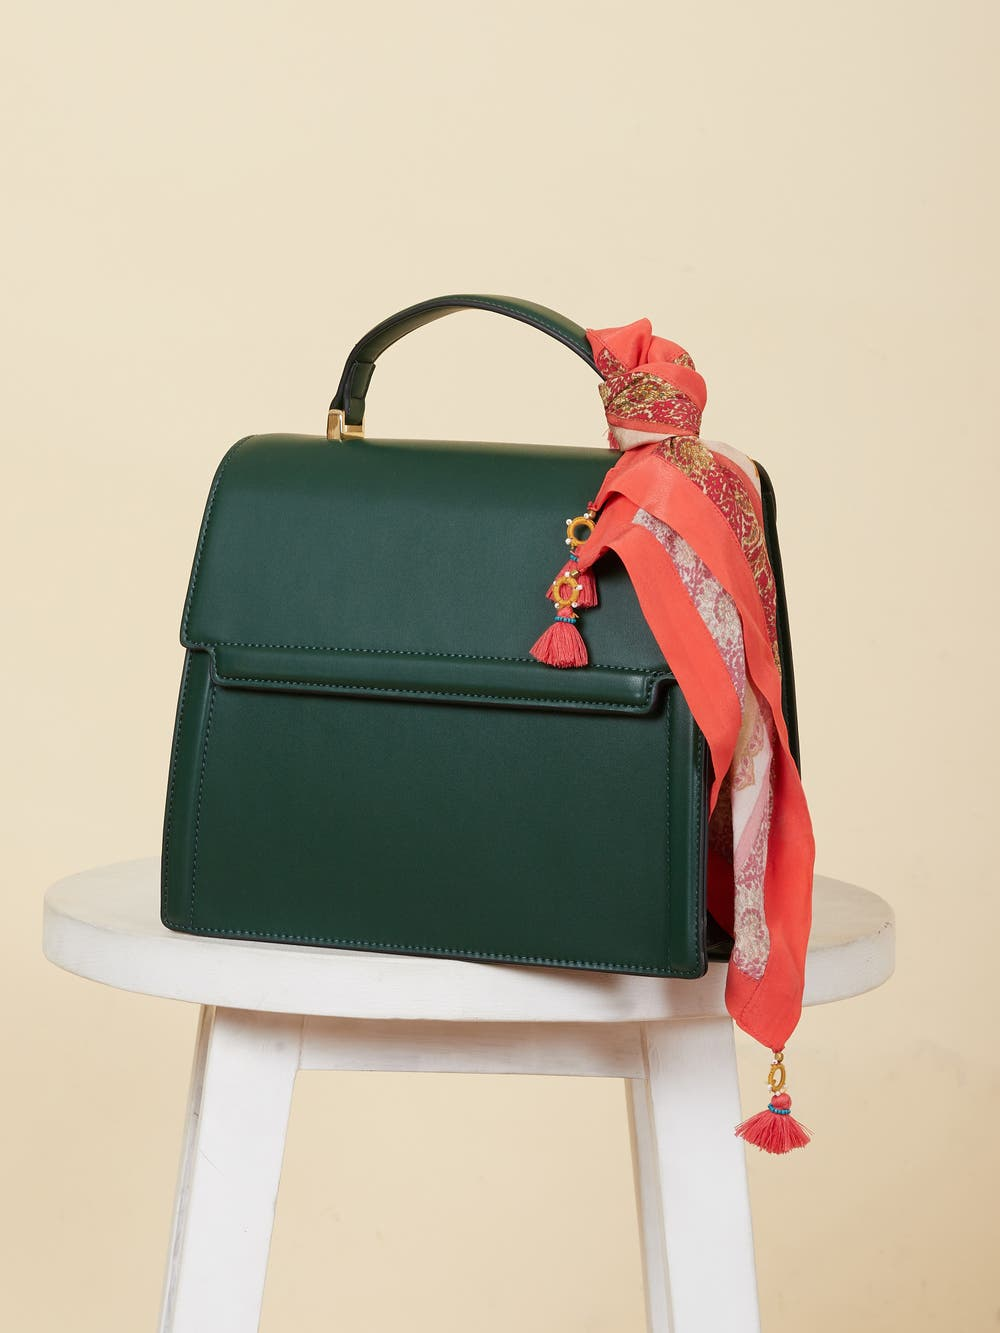 Emerald Green Sling Bag with Scarf